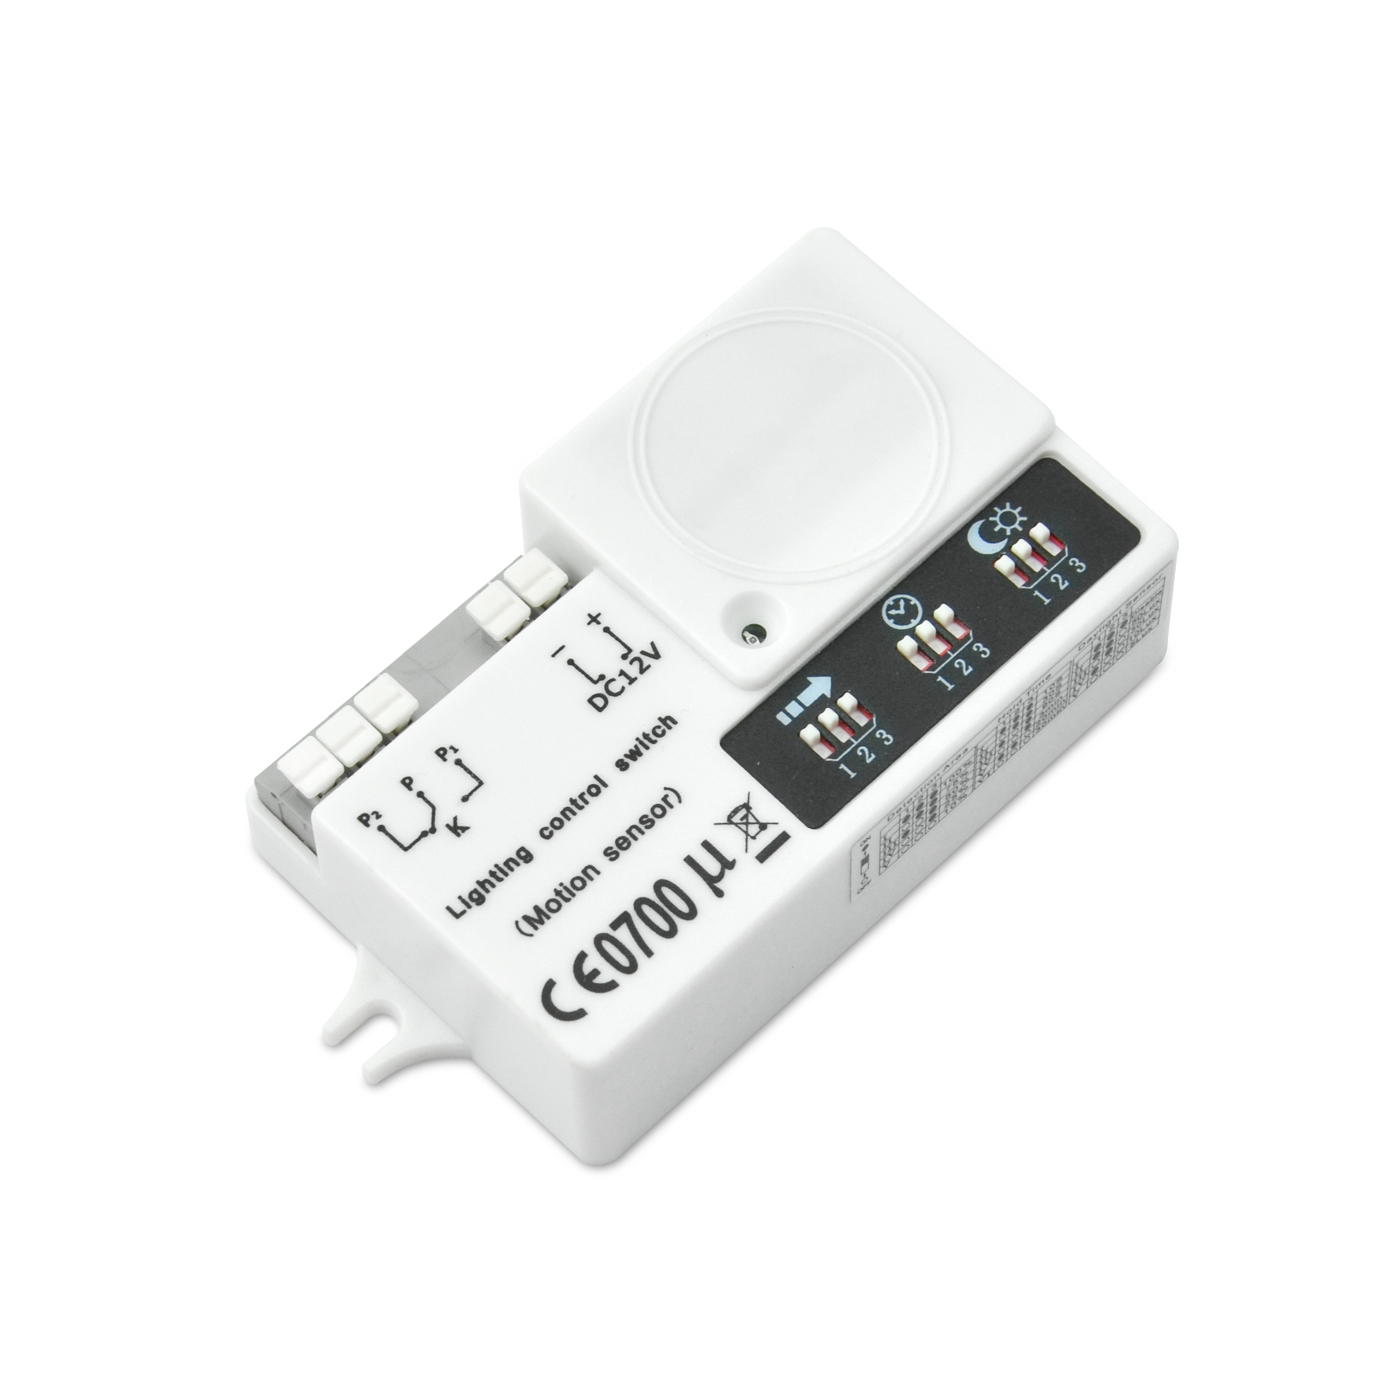 [out of stock]12VDC dry contact motion detector